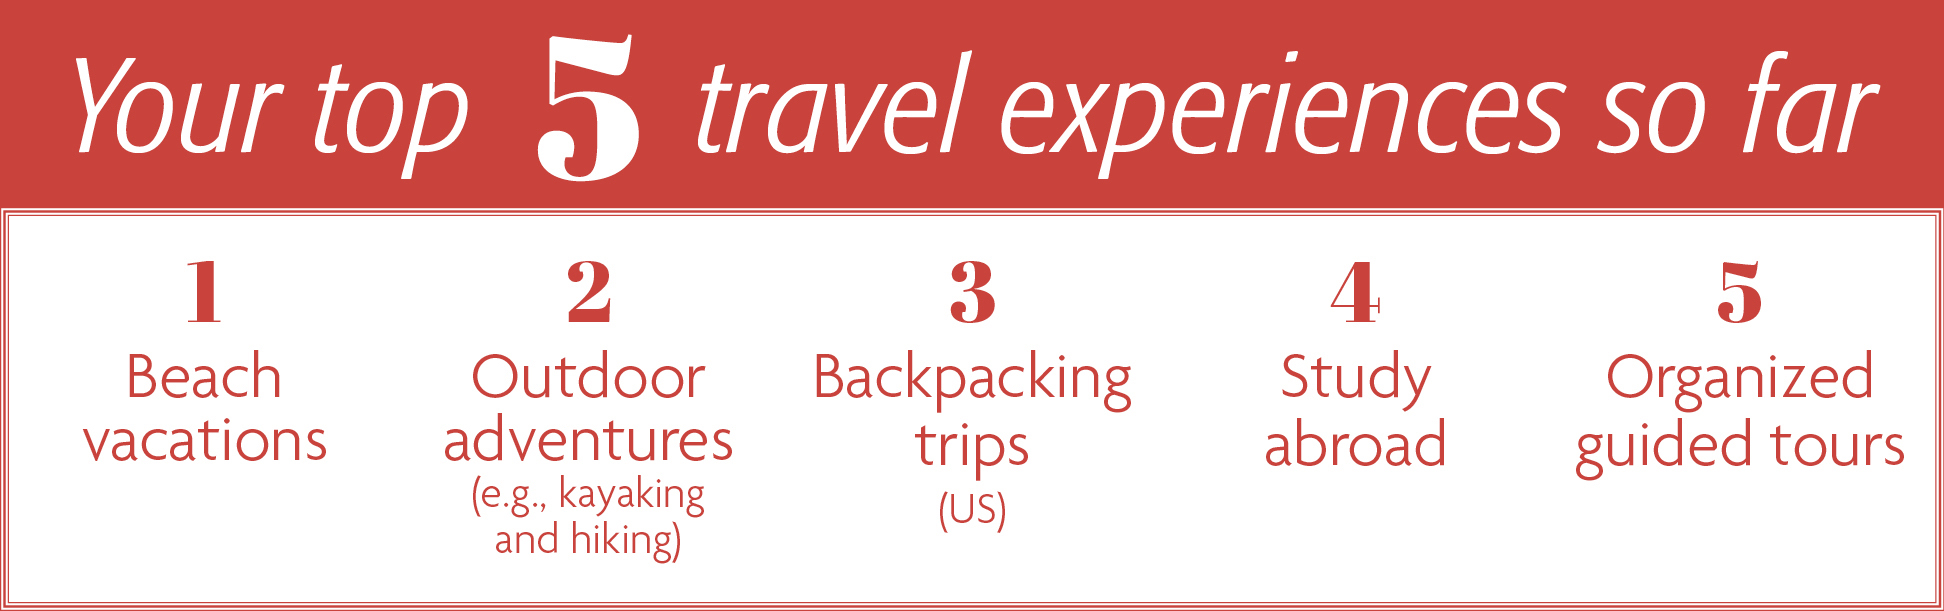 Your top 5 travel experiences so far - 1. Beach vacations 2. Outdoor adventures (e.g., kayaking and hiking) 3. Backpacking trips (US) 4. Study abroad 5. Organized guided tours